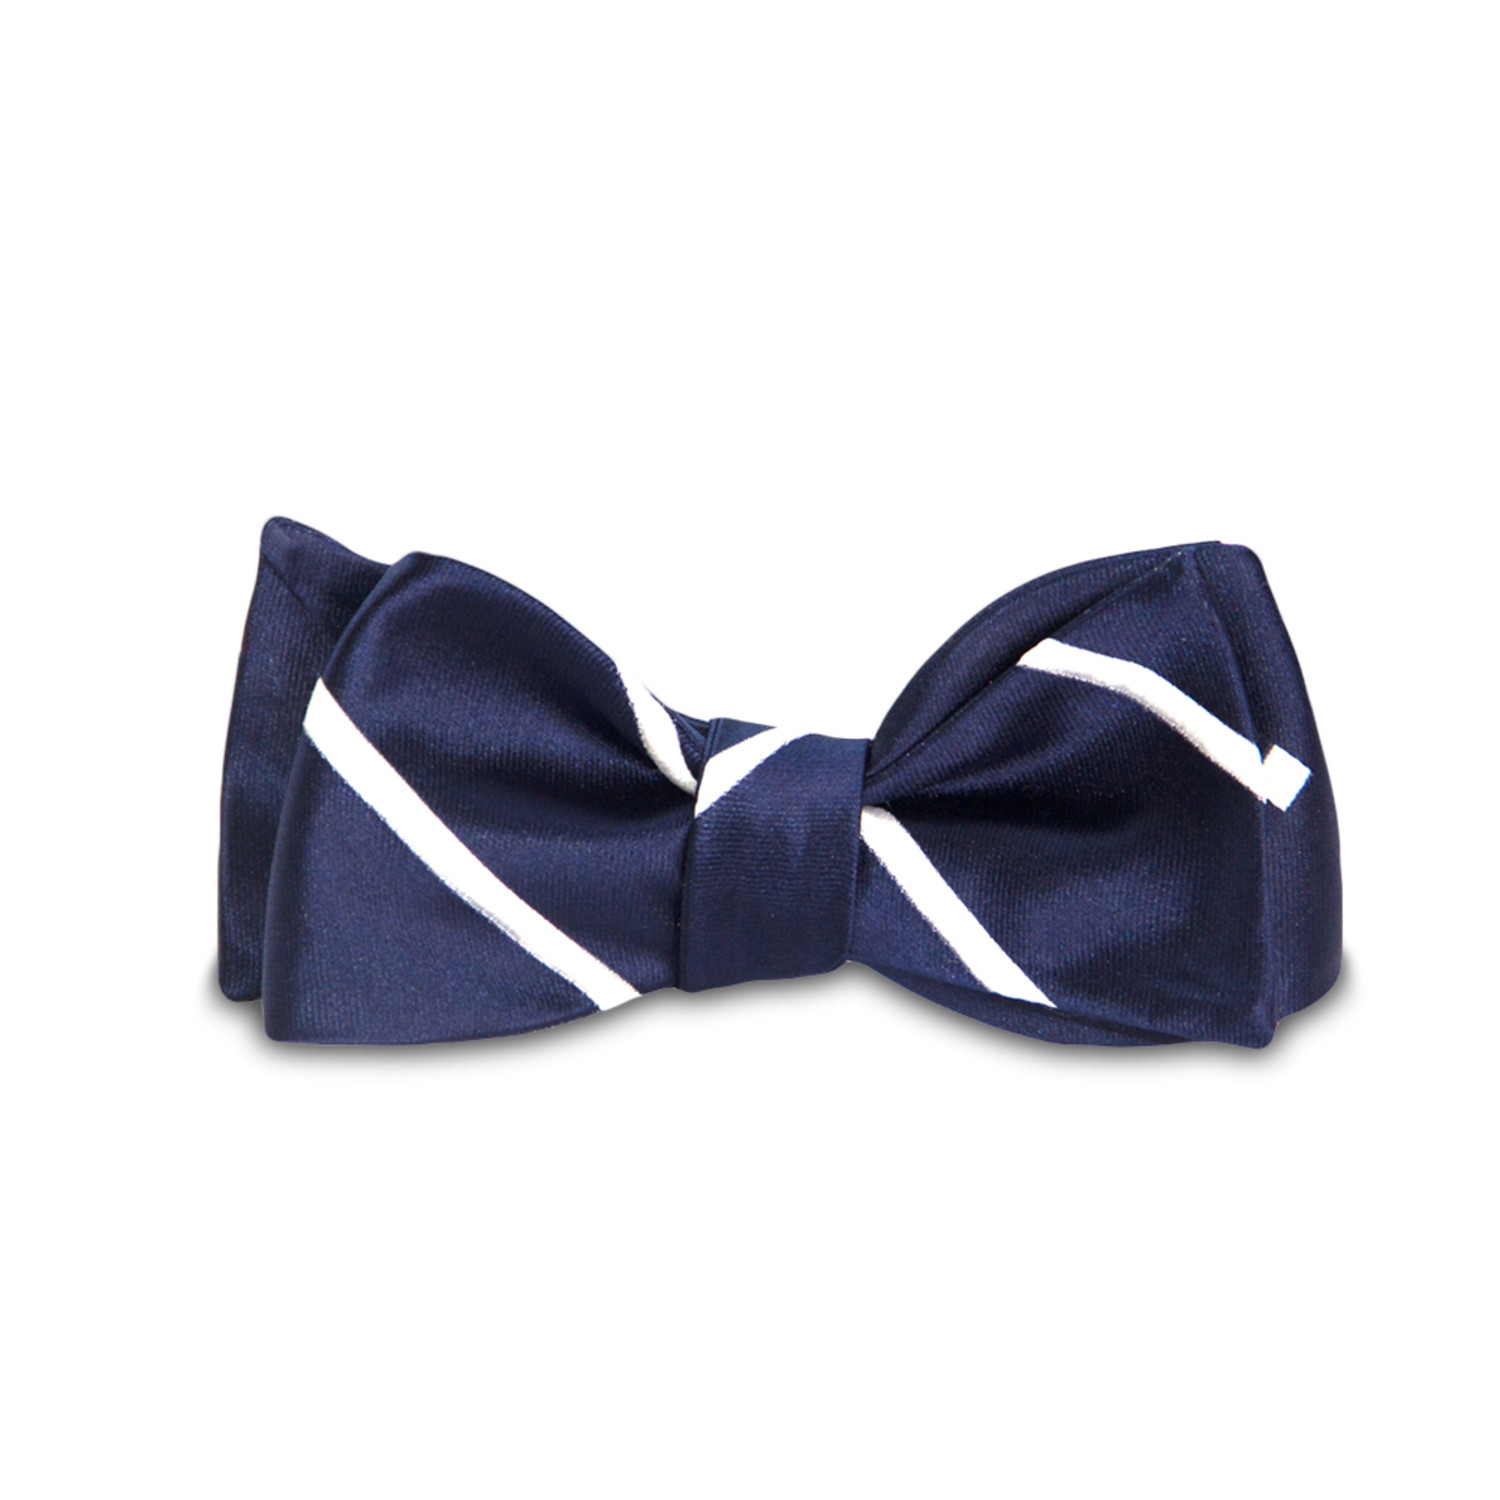 Magnetic Bow Tie // Navy Blue Satin Dotted and Stripe ...